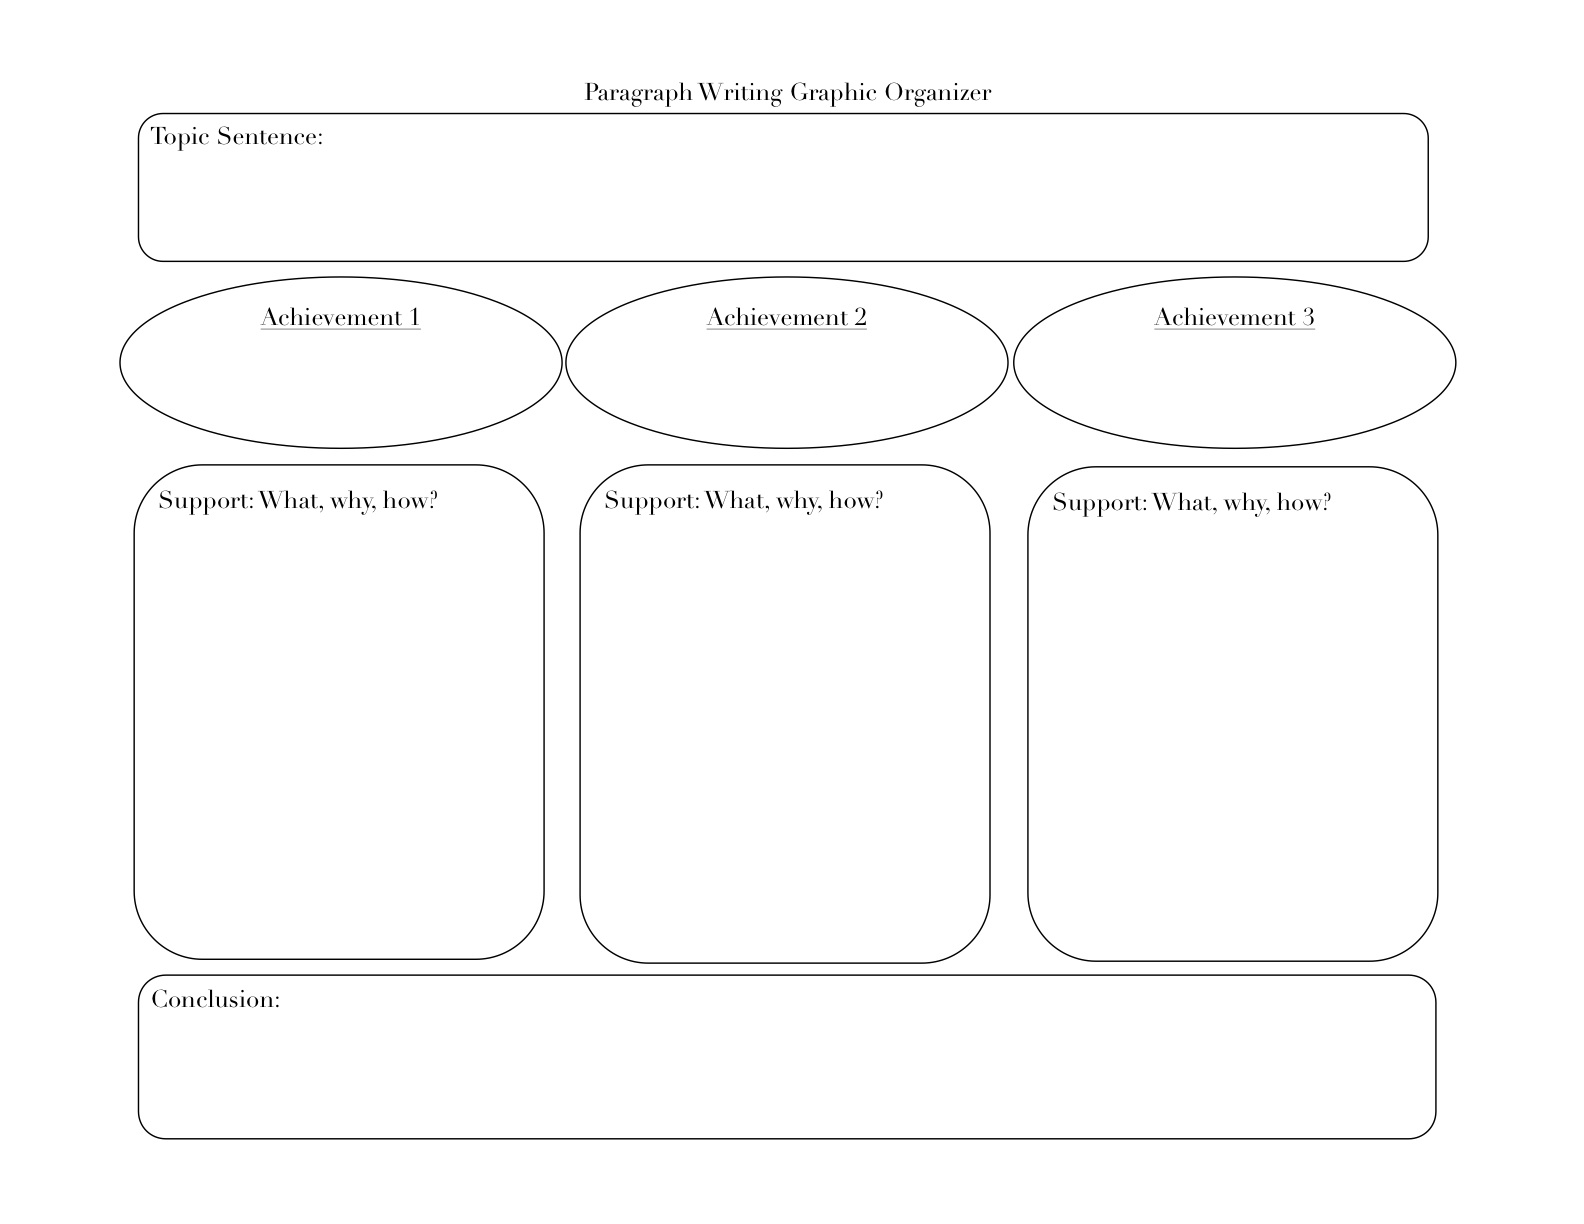 blank tree diagram graphic organizer 2001 subaru outback parts search results for 100 charts  calendar 2015